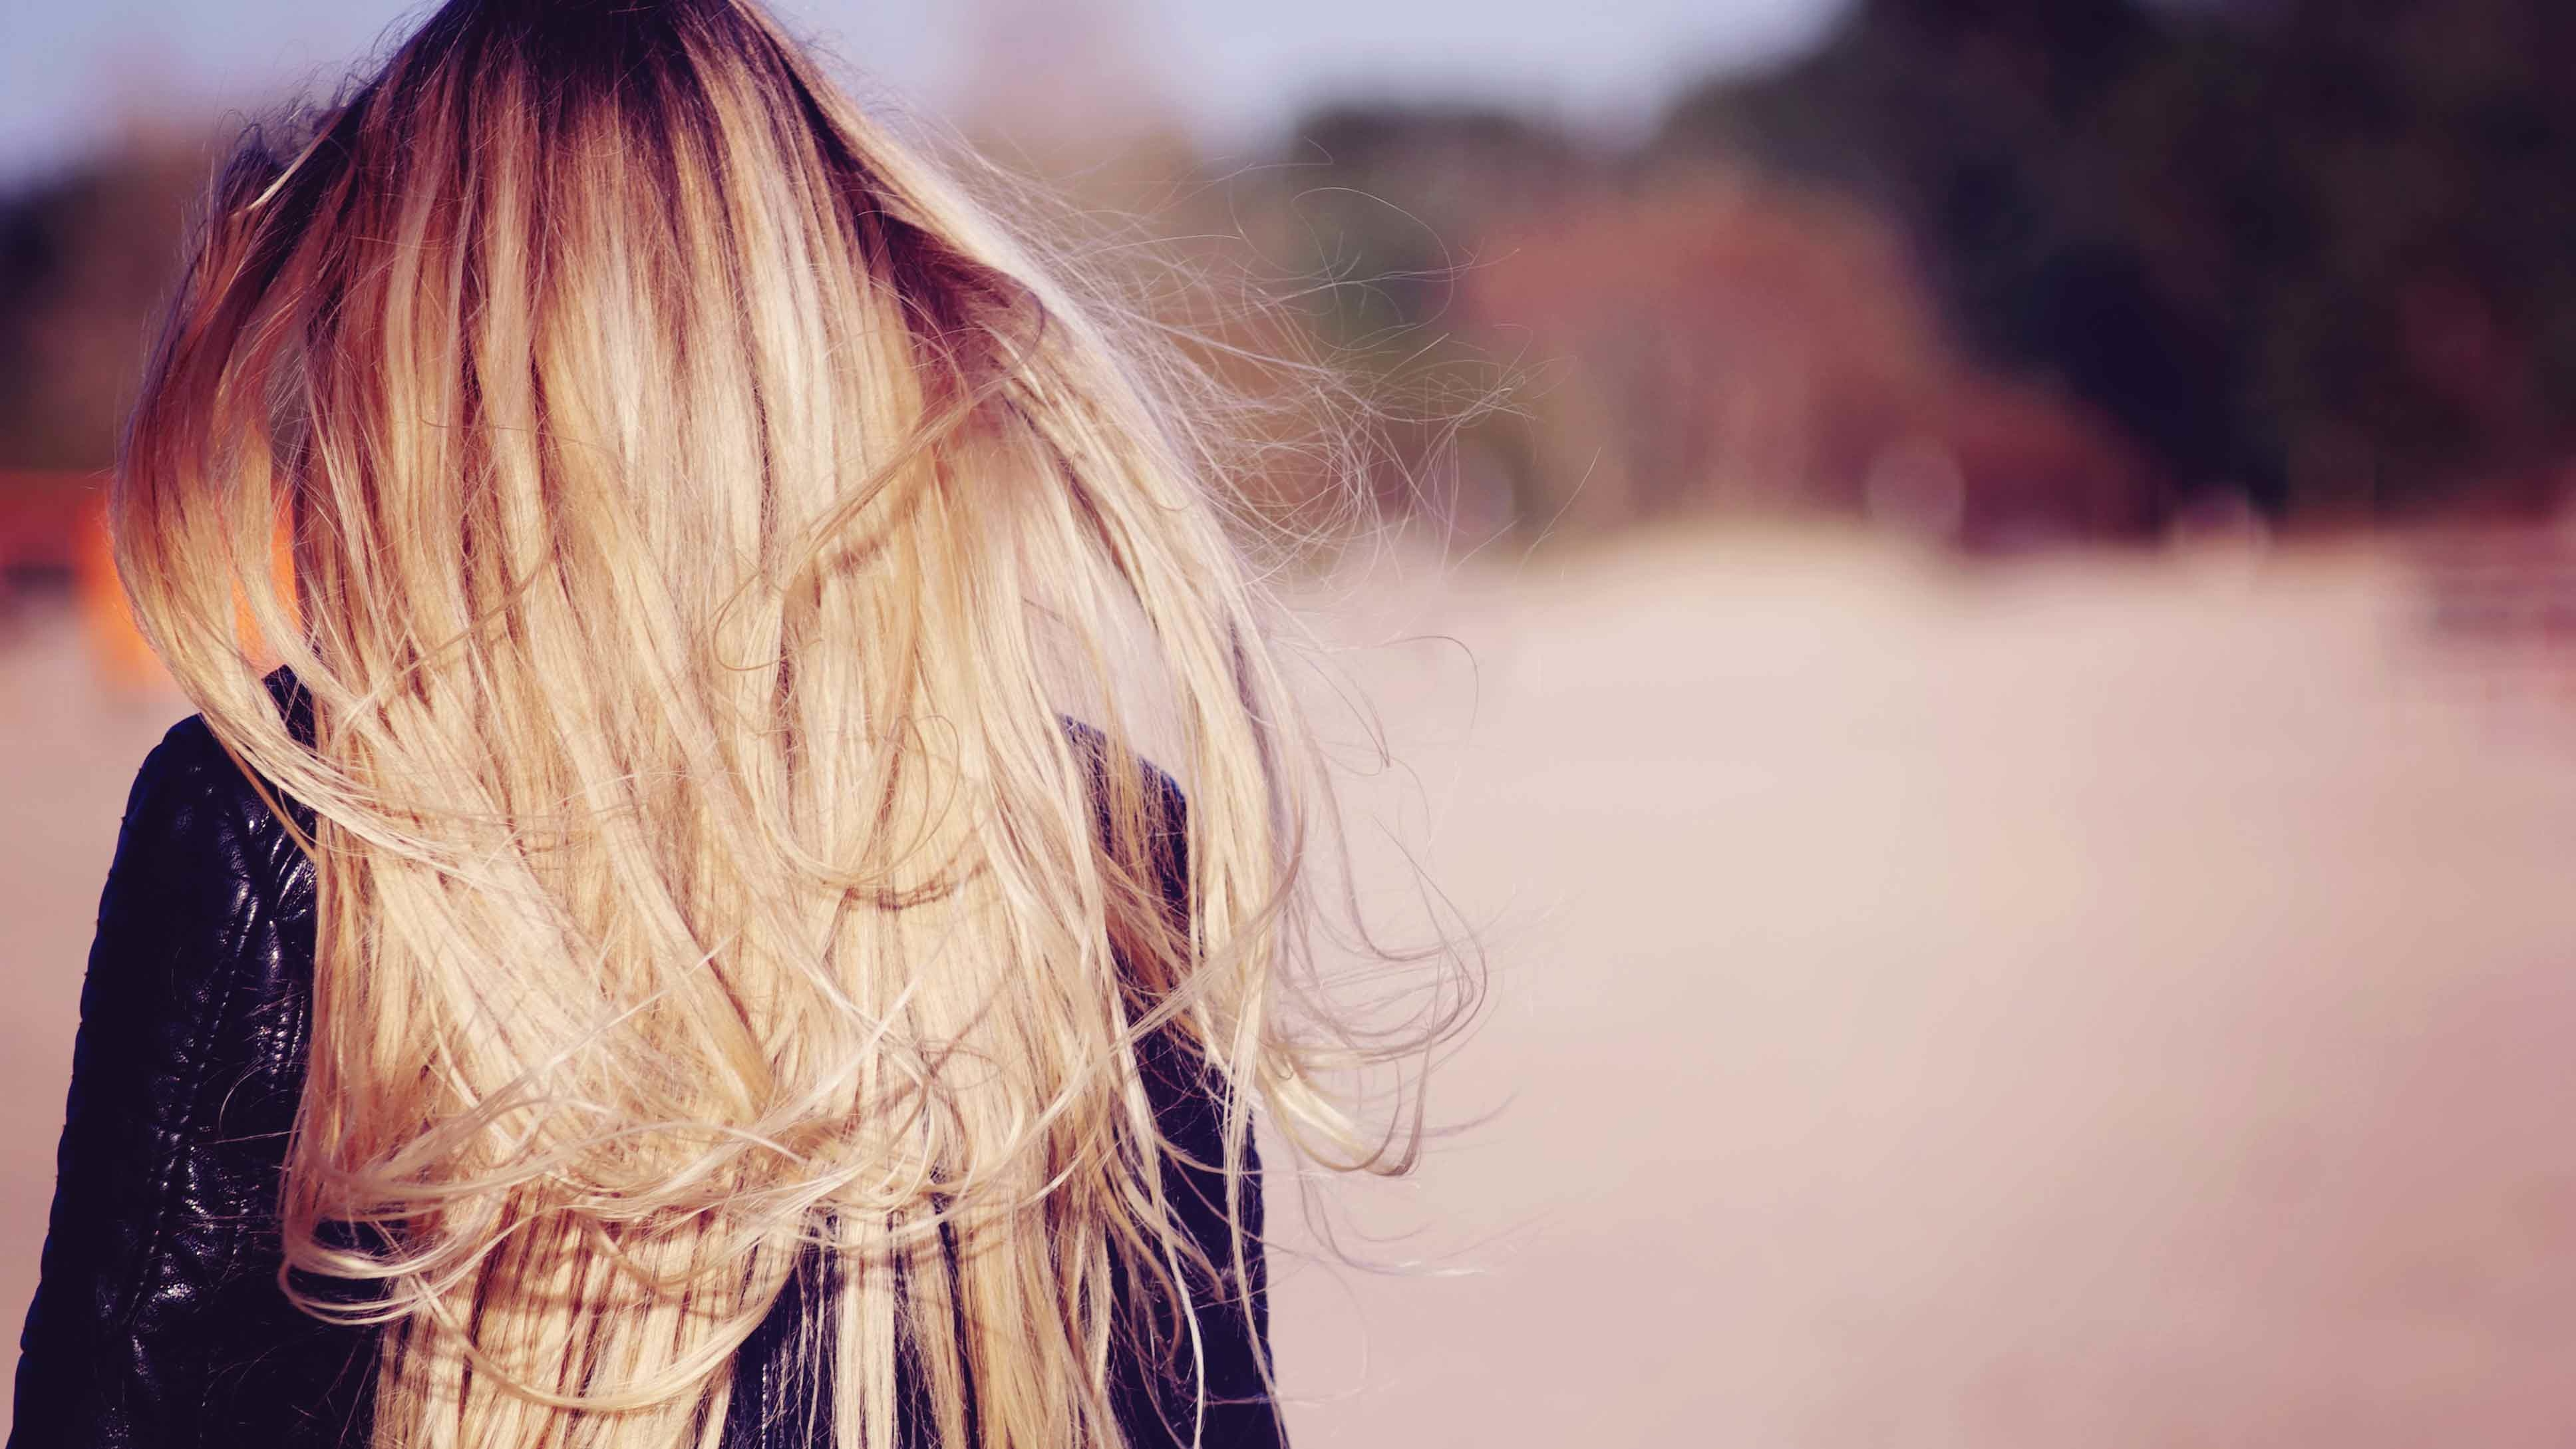 How To Rejuvenate Your Hair After Extensions